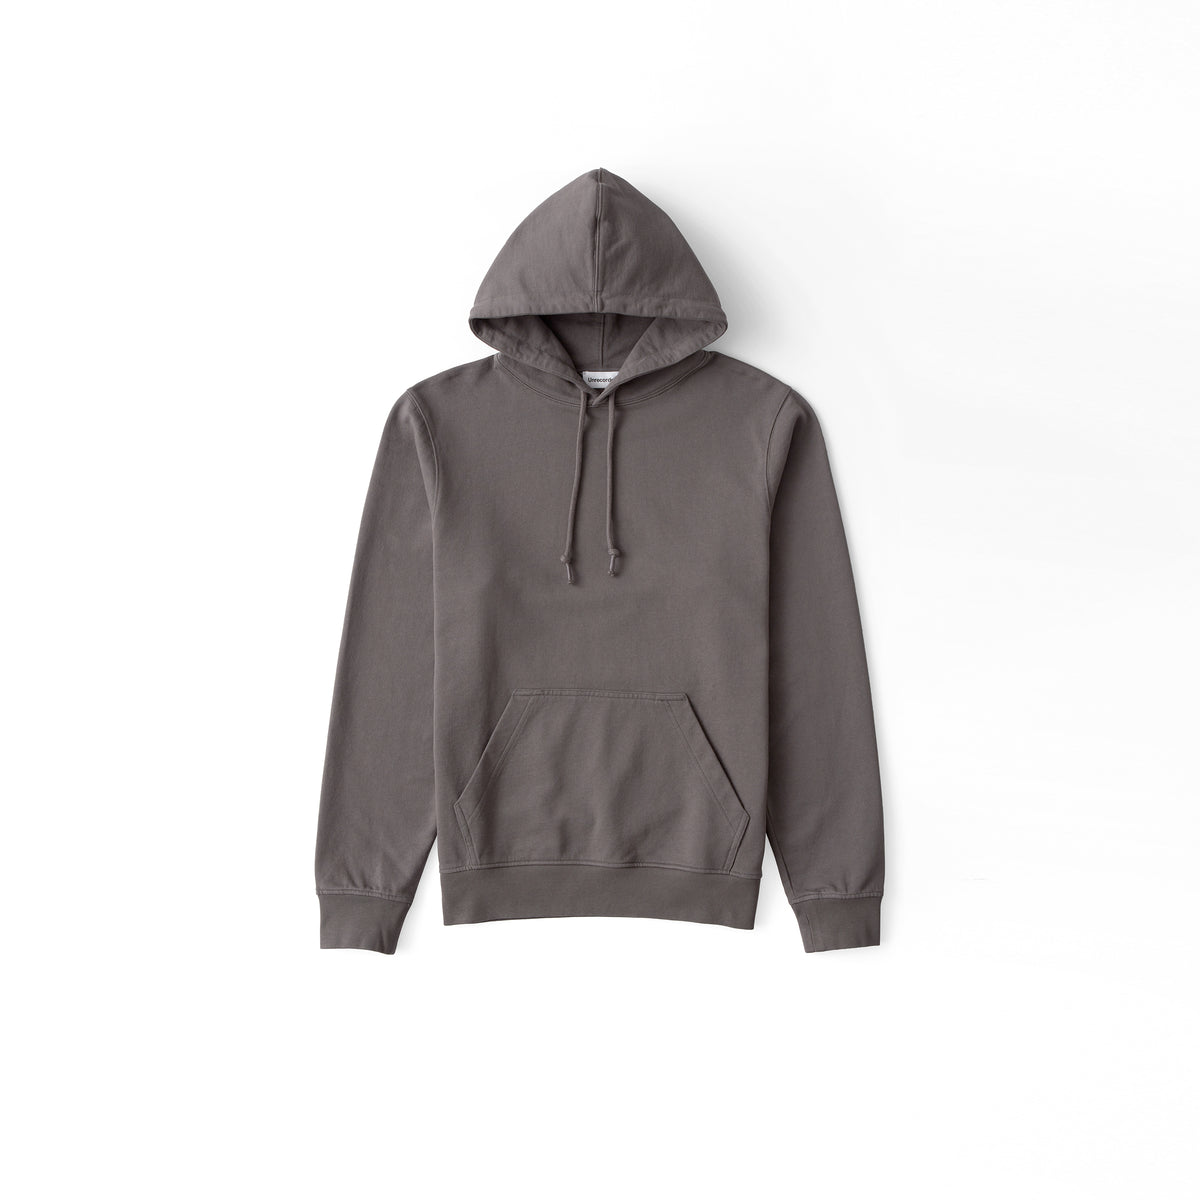 Hoodie Charcoal - Unrecorded